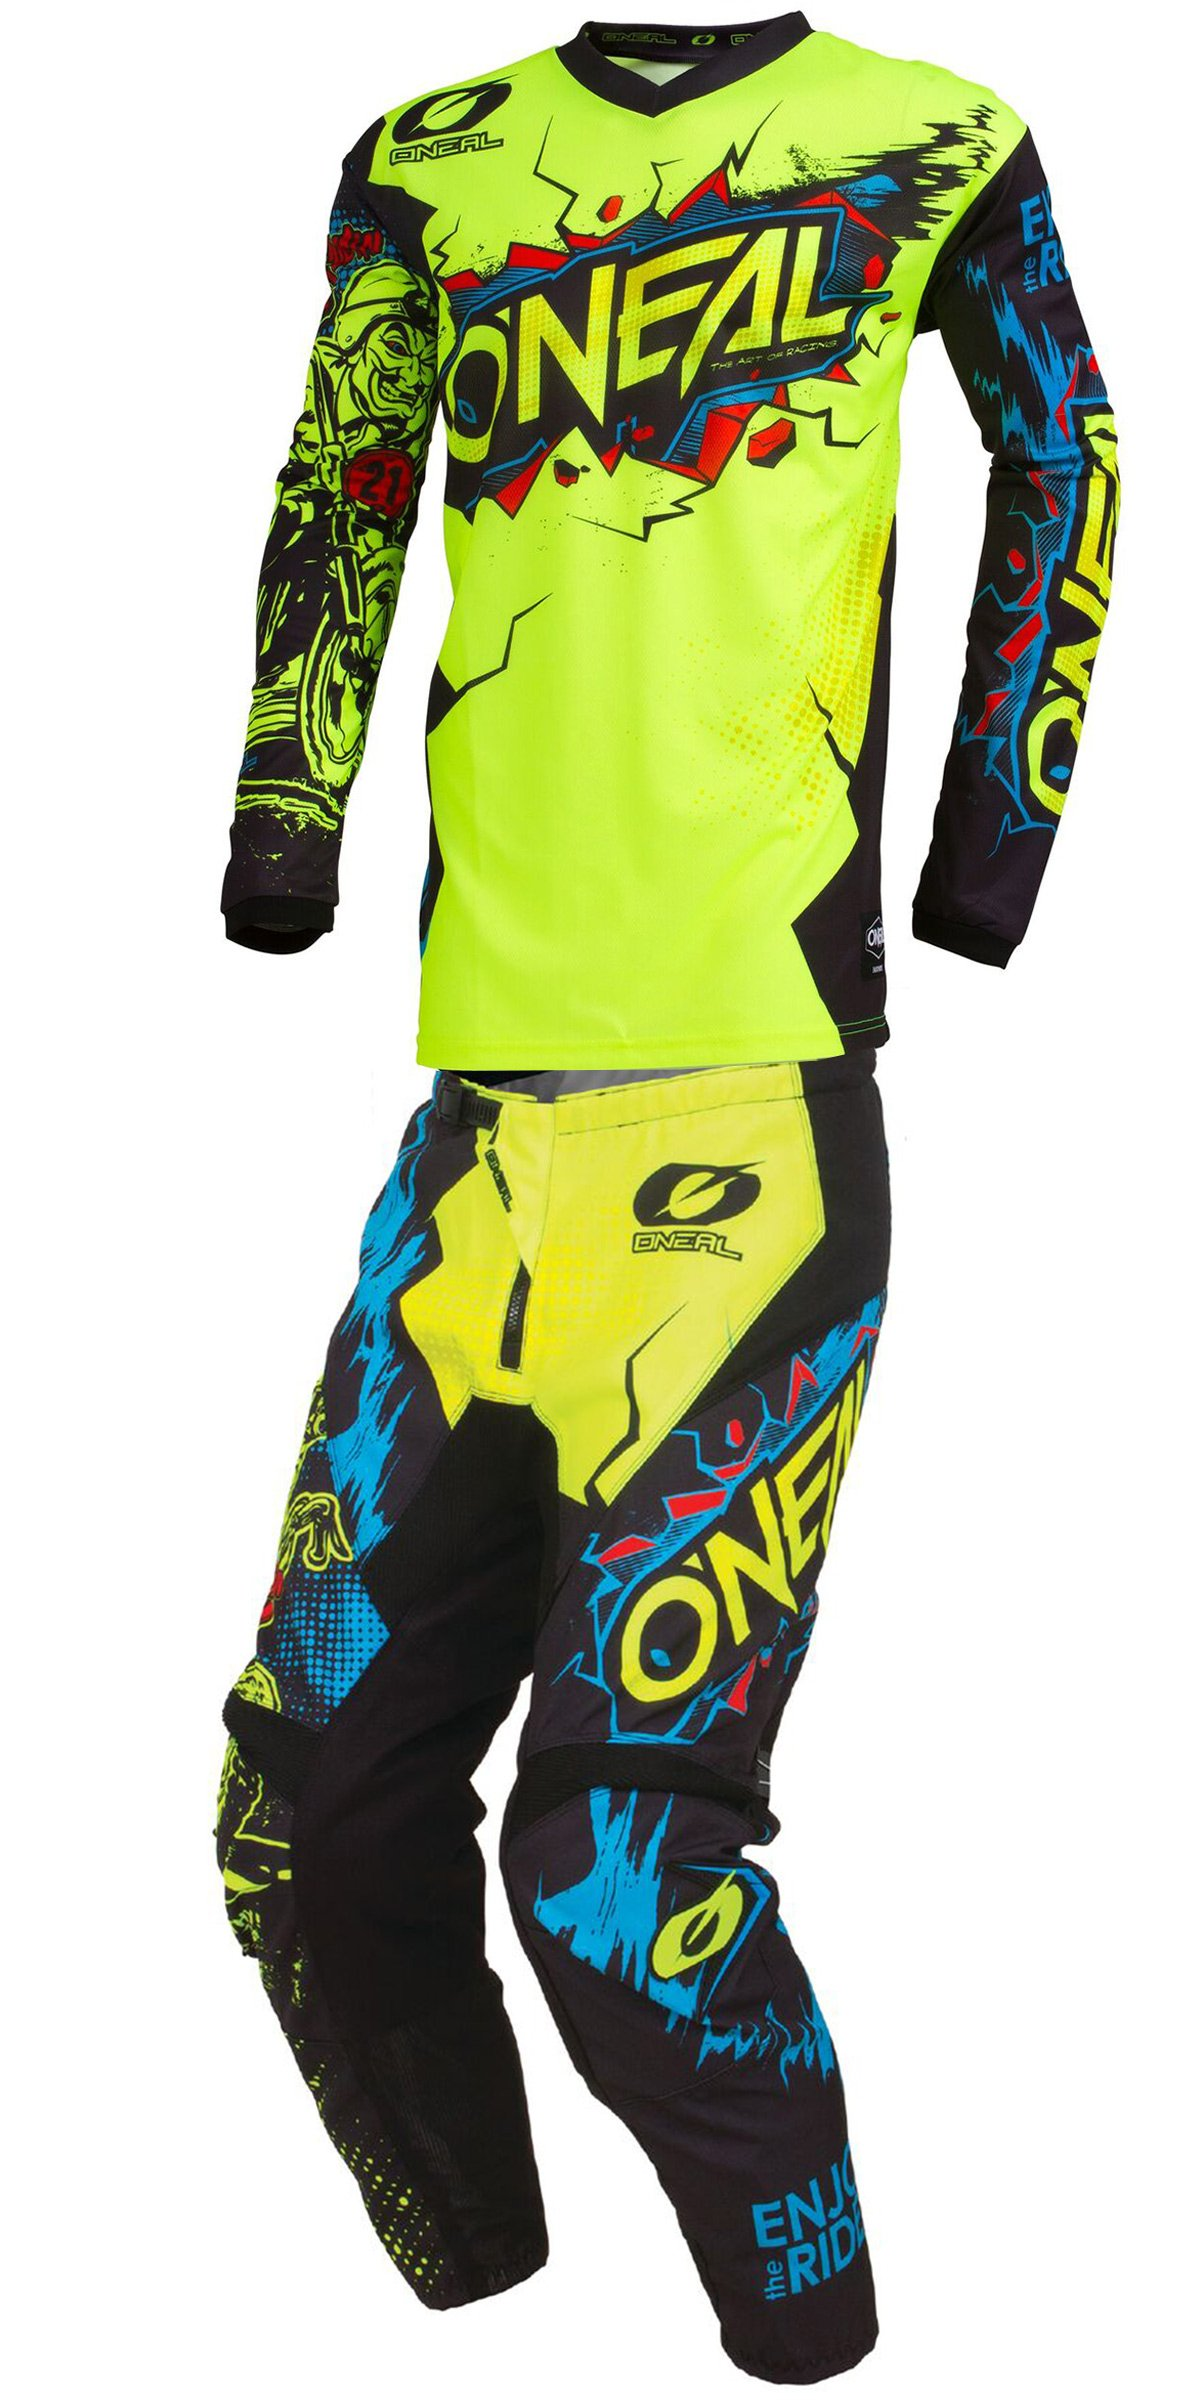 O'Neal - 2019 Element Villain (Youth NEON Yellow Y-XLarge/Y-28W) MX Riding Gear Combo Set, Motocross Off-Road Dirt Bike Jersey & Pant